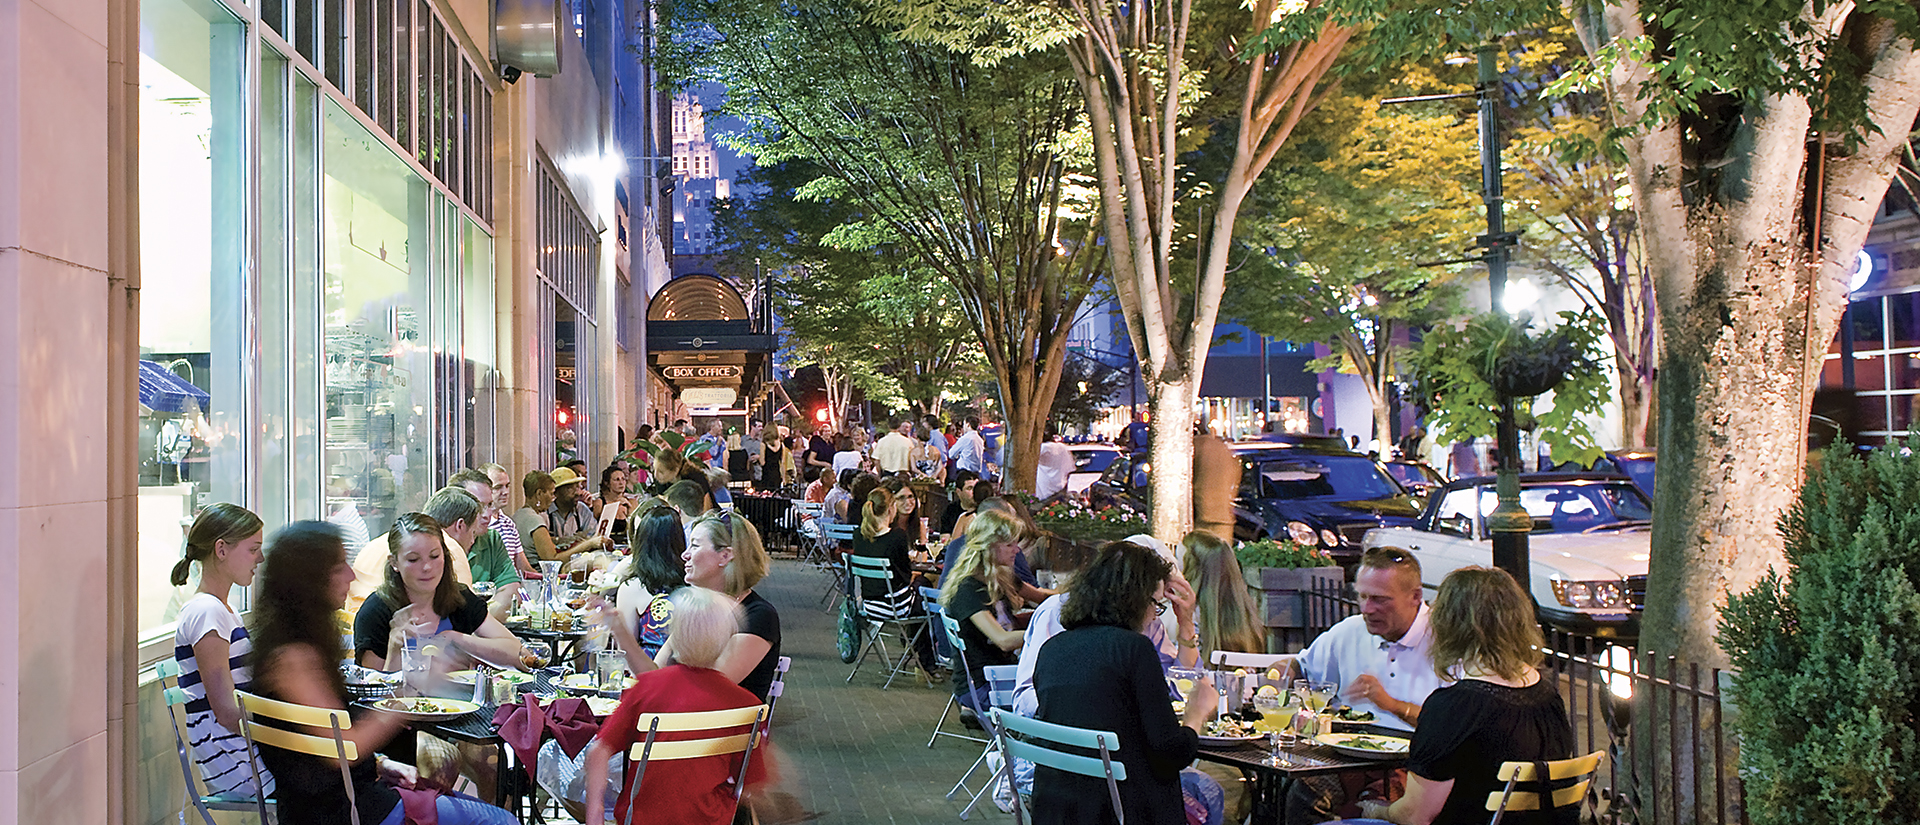 SUMMER _ downtown dining on 4th street in Winston-Salem